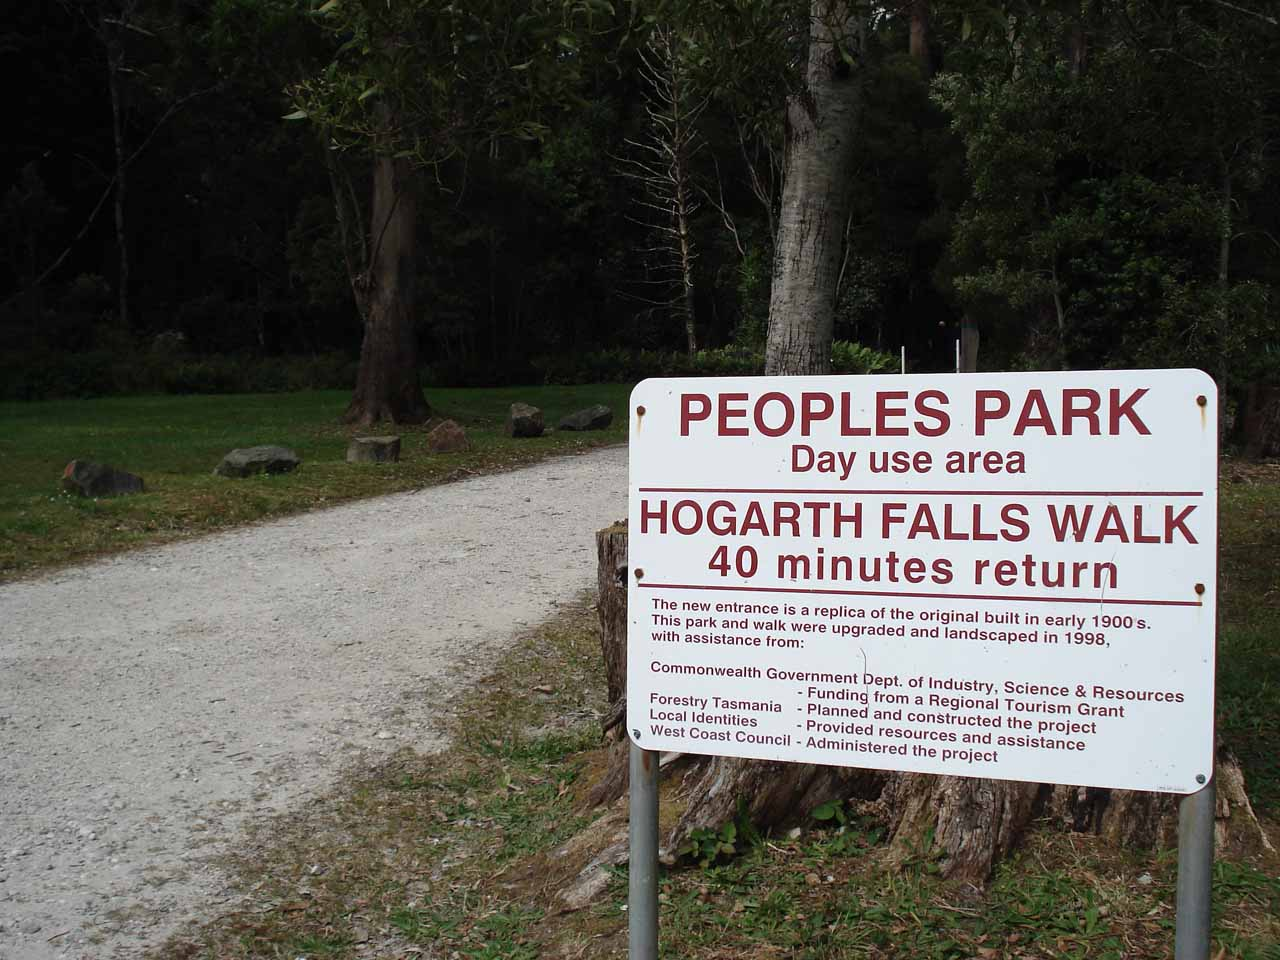 Starting on the walk for Hogarth Falls